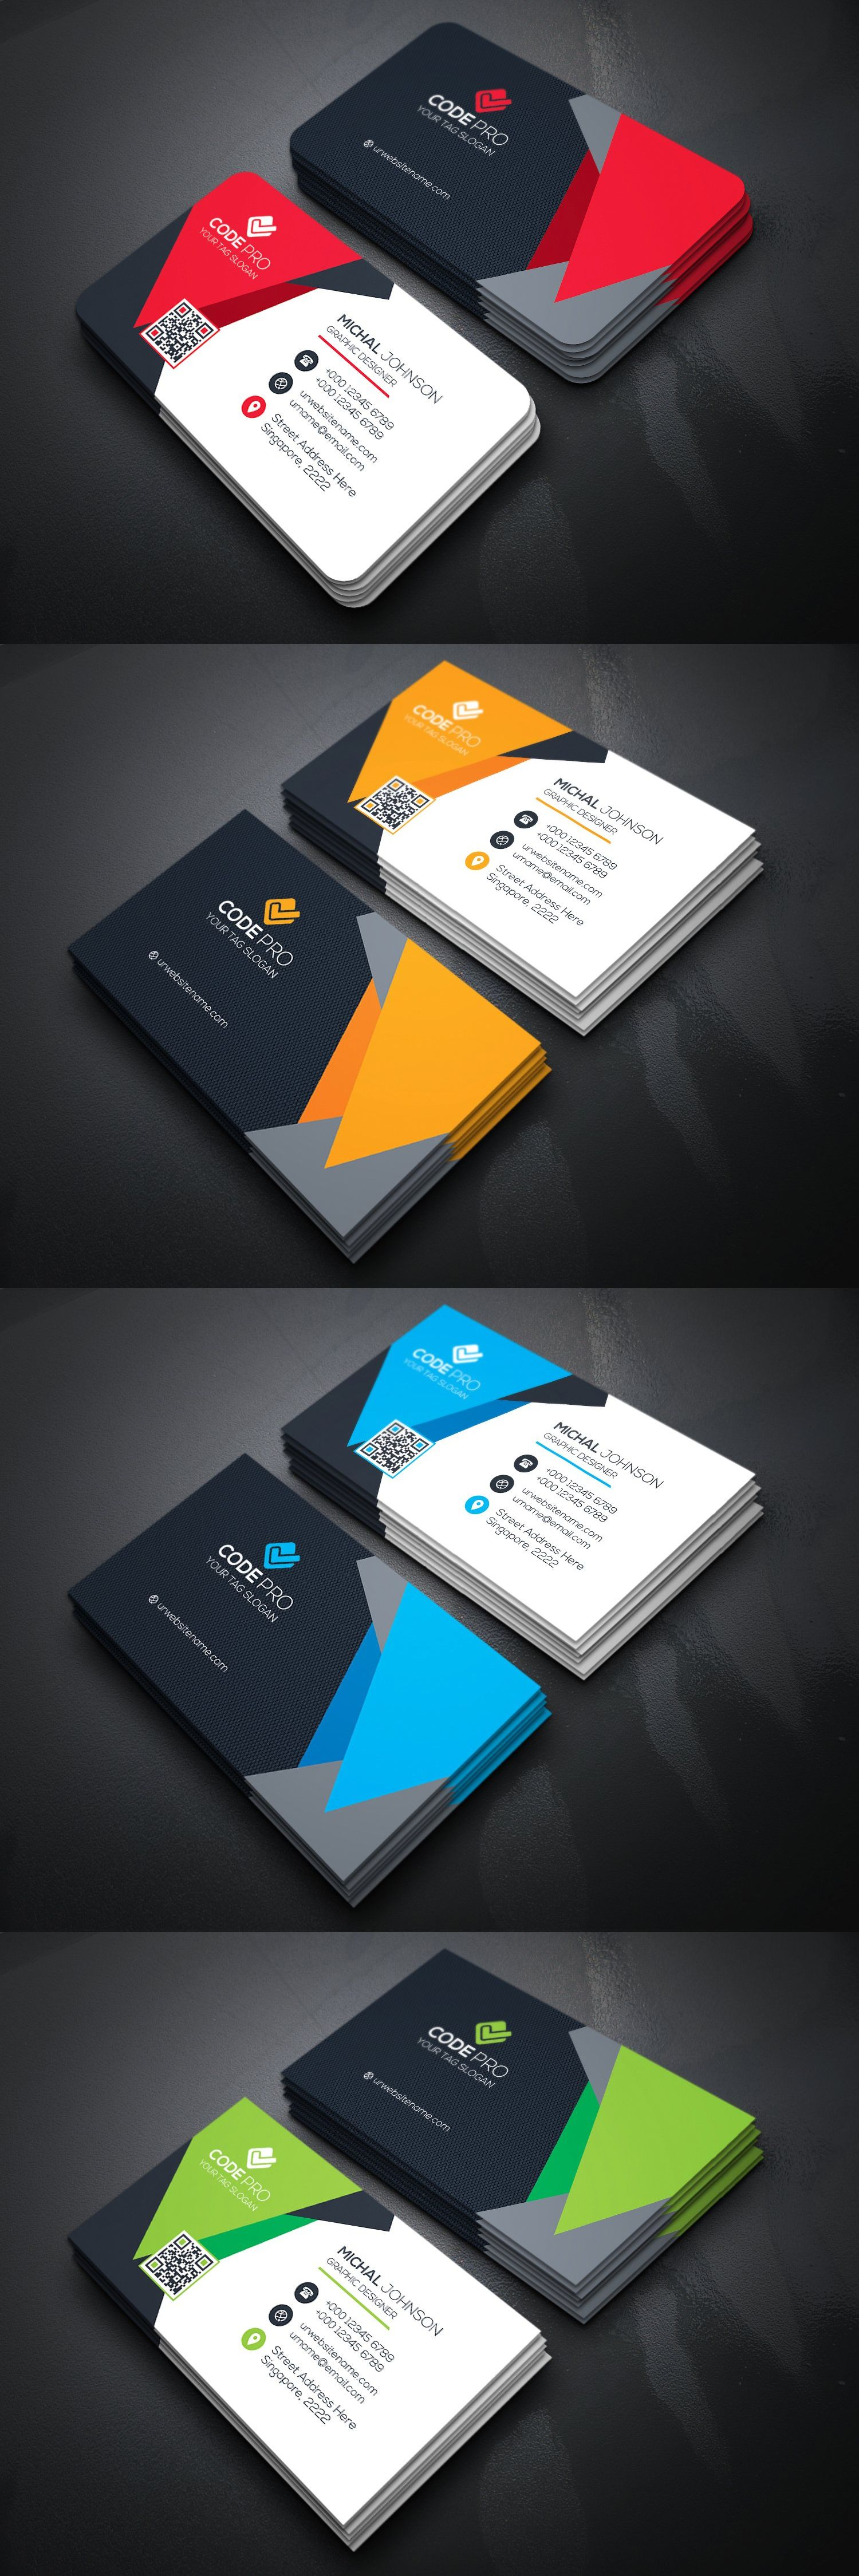 Creative business card templates psd business card templates creative business card templates psd wajeb